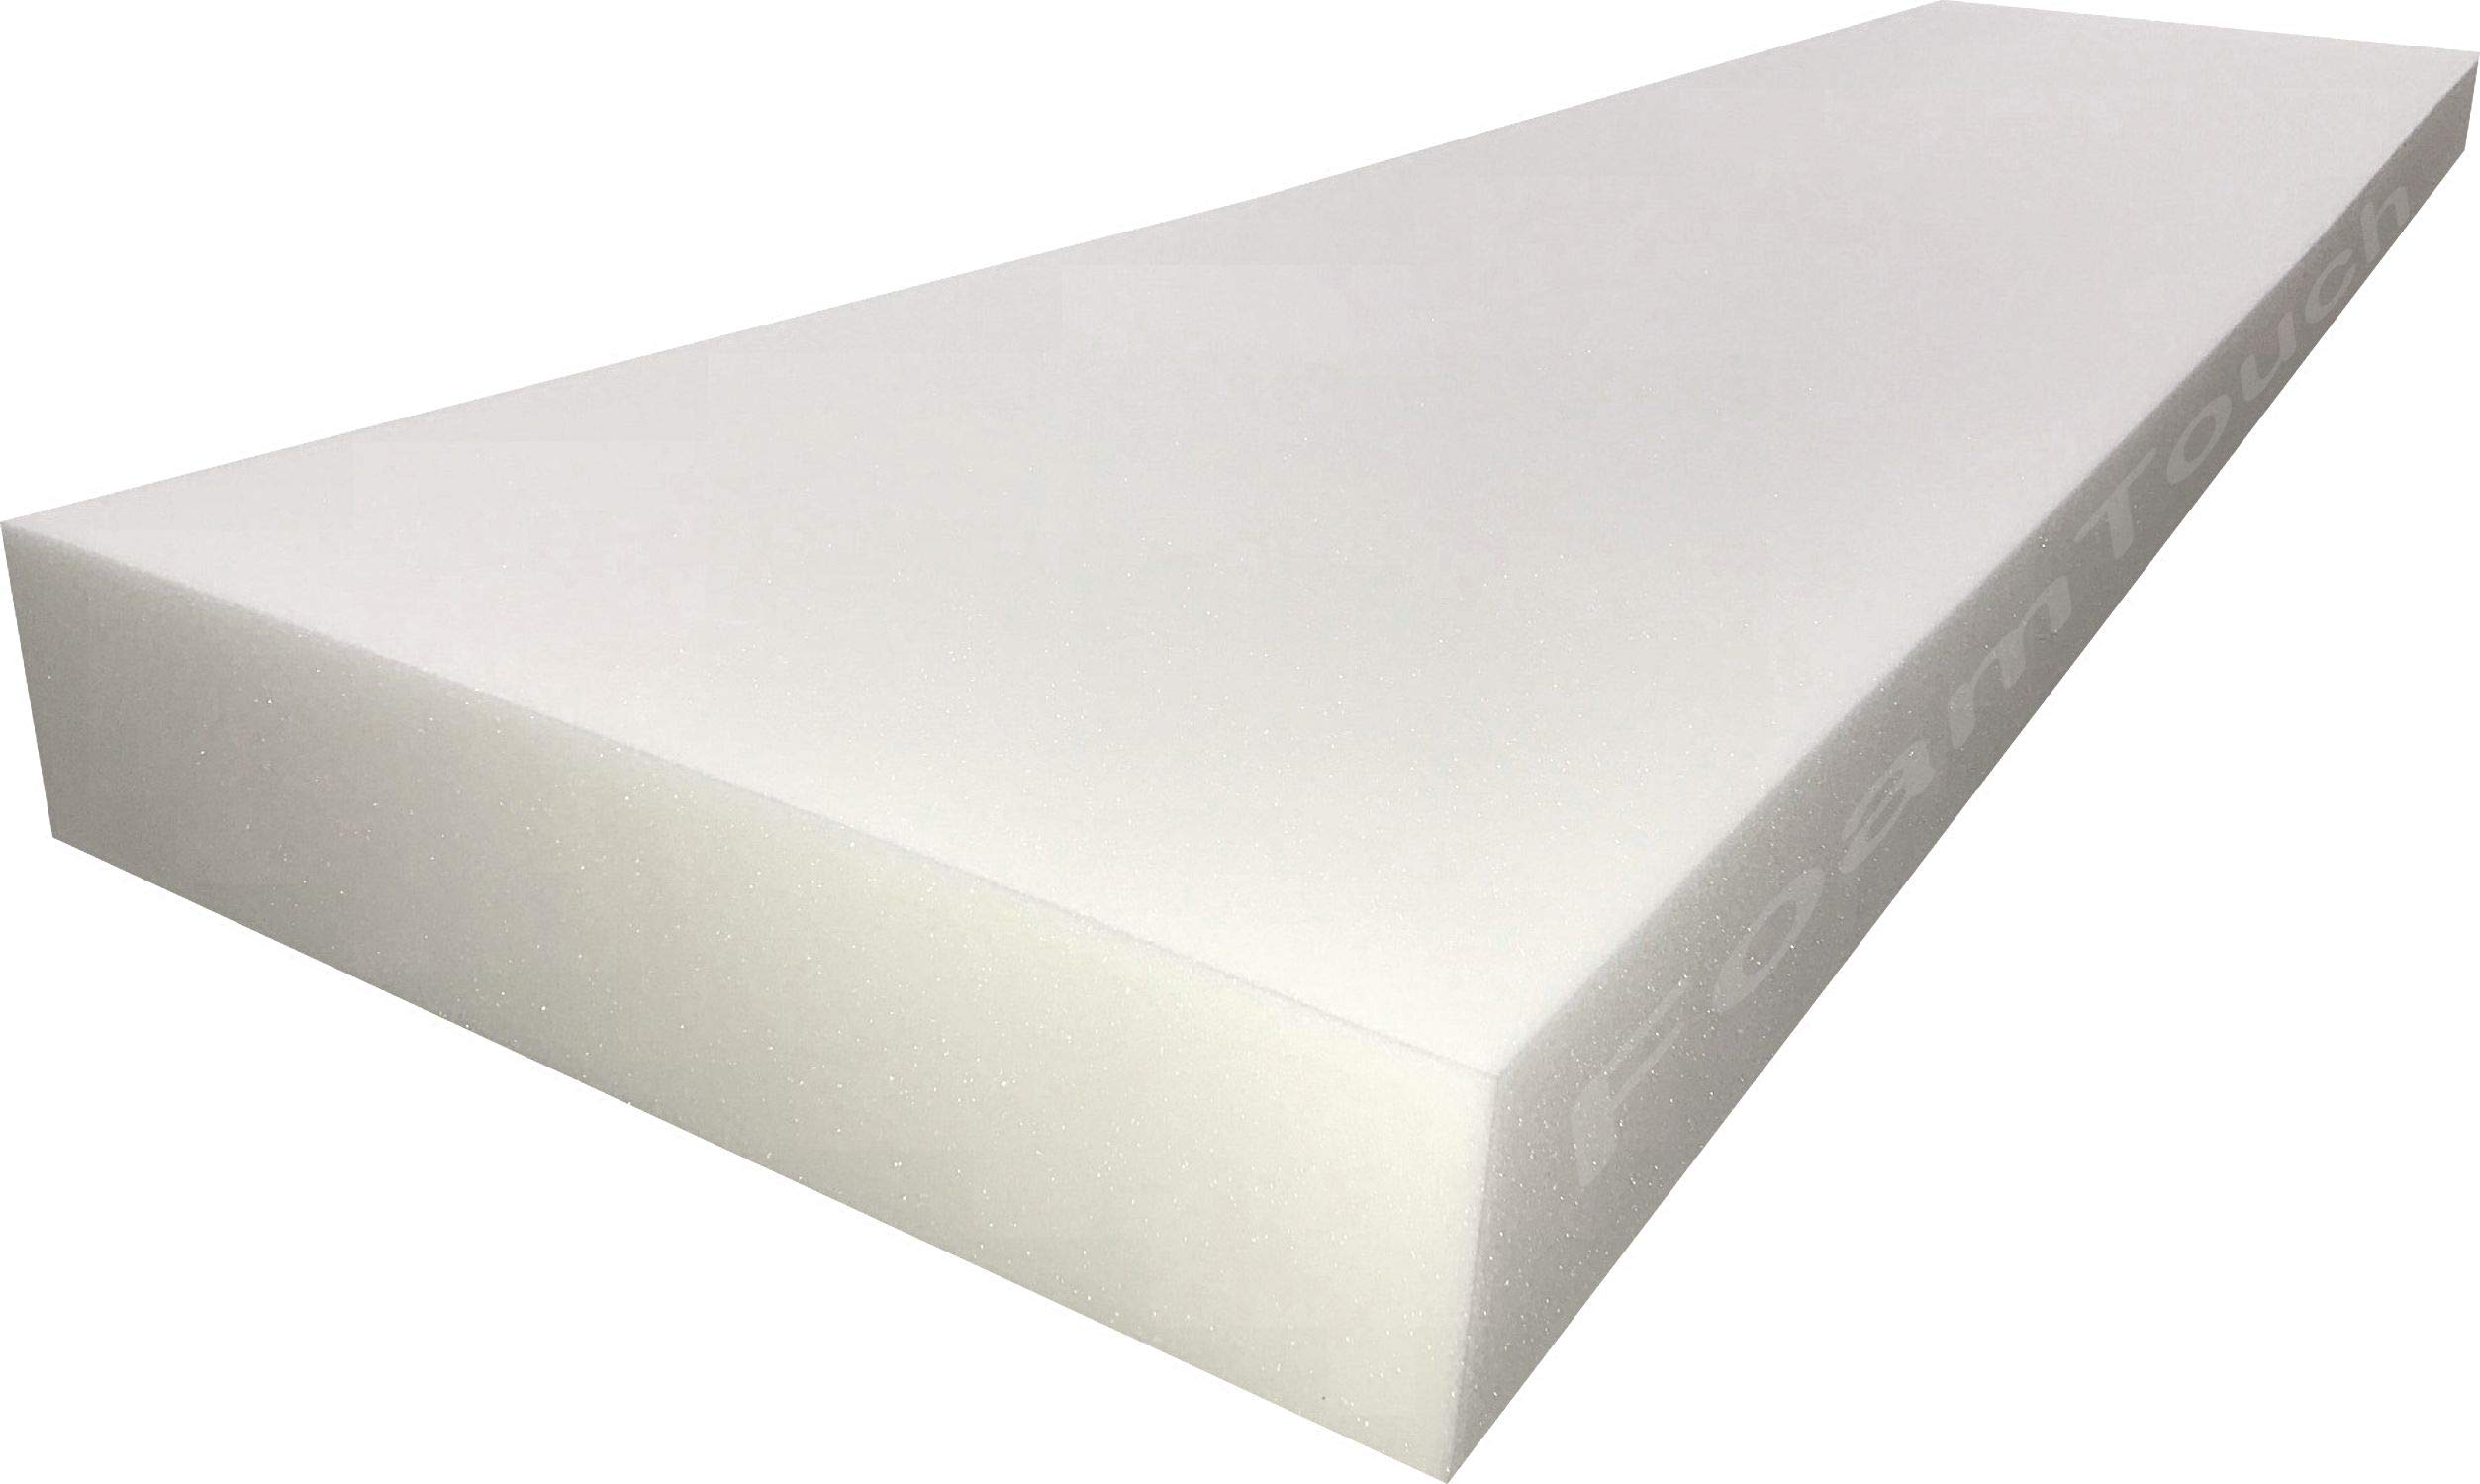 4'' X 24'' X 84'' Upholstery Foam Cushion High Density Standard (Seat Replacement, Upholstery Sheet, Foam Padding) by FoamTouch